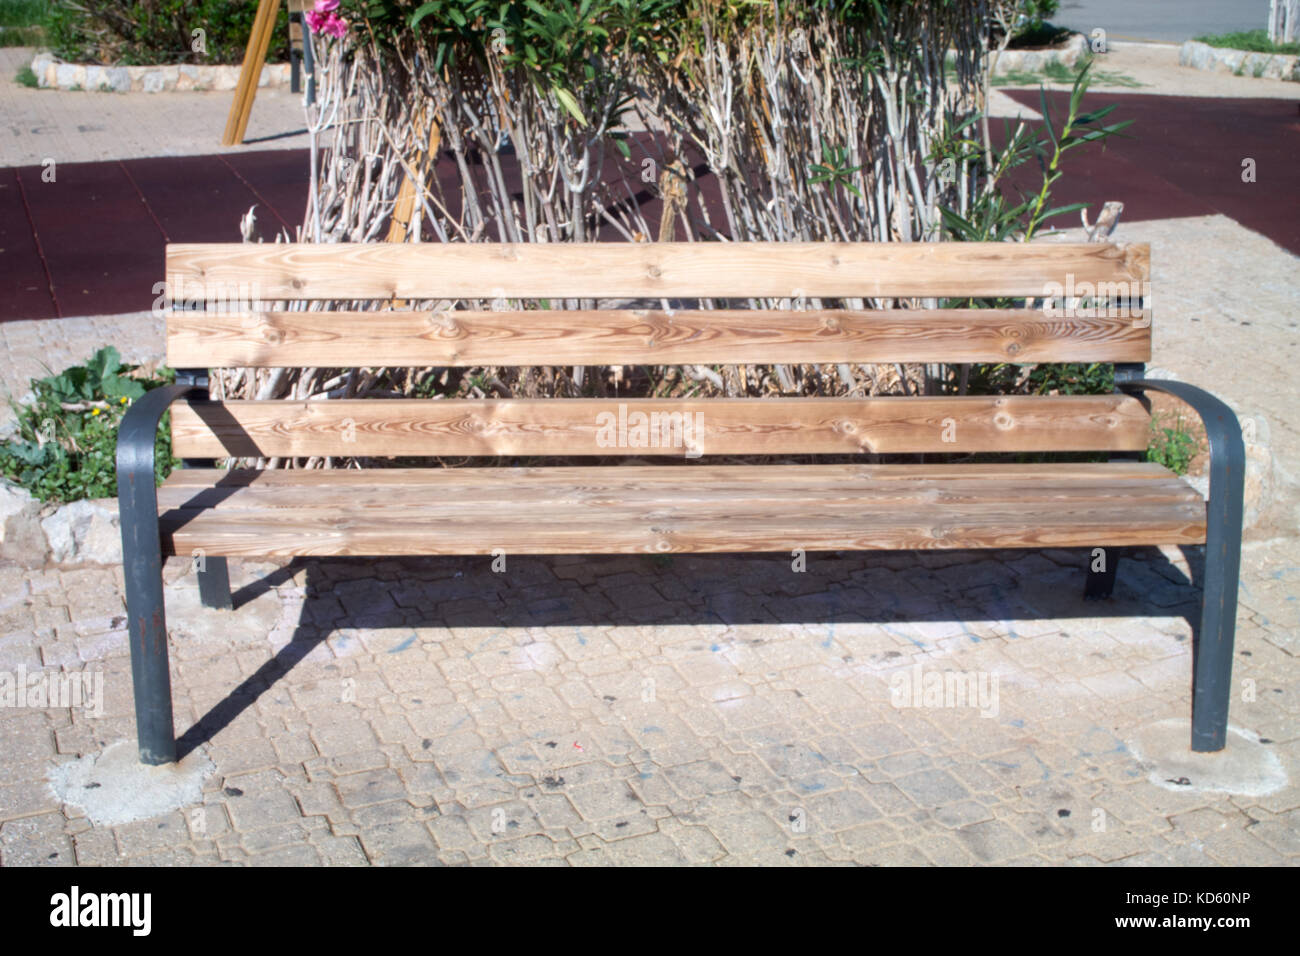 Wooden Park Benches Front Wooden Bench At Park View In Front Stock Photo 163016162